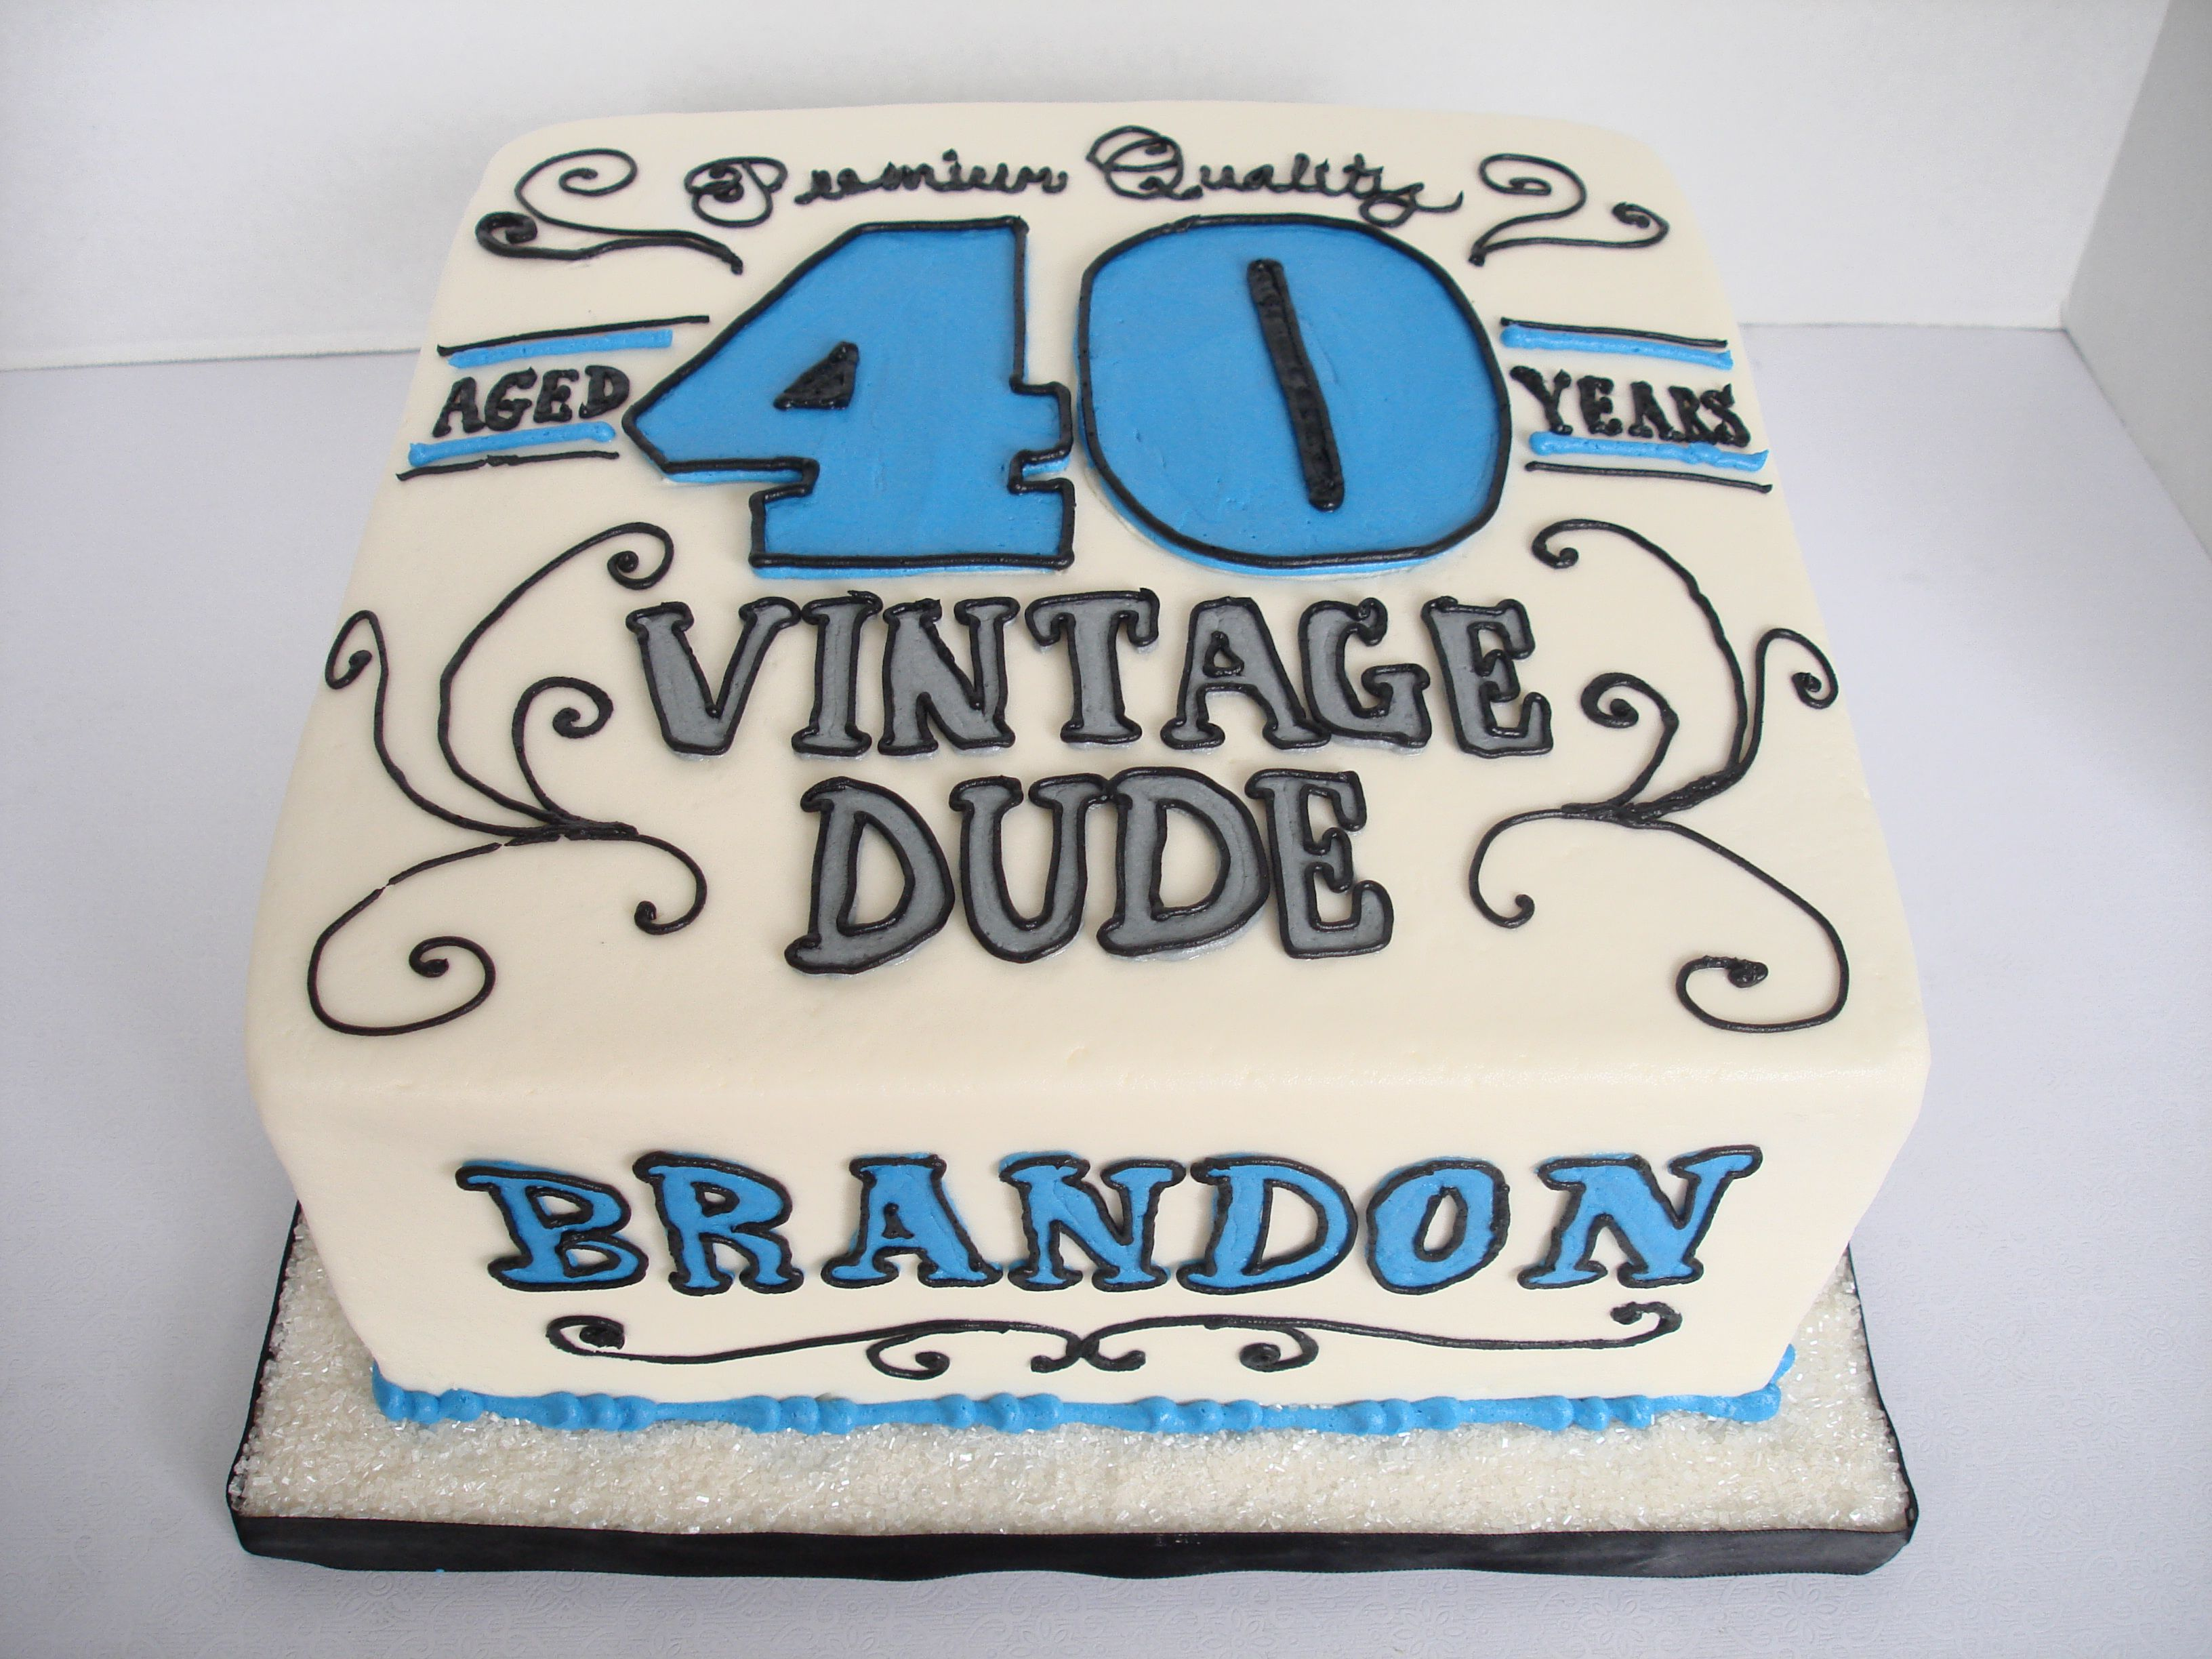 Vintage Dude Cake Ooooo This In Red Instead Of Blue Then I Can Have Cupcakes With Little 80s On Them